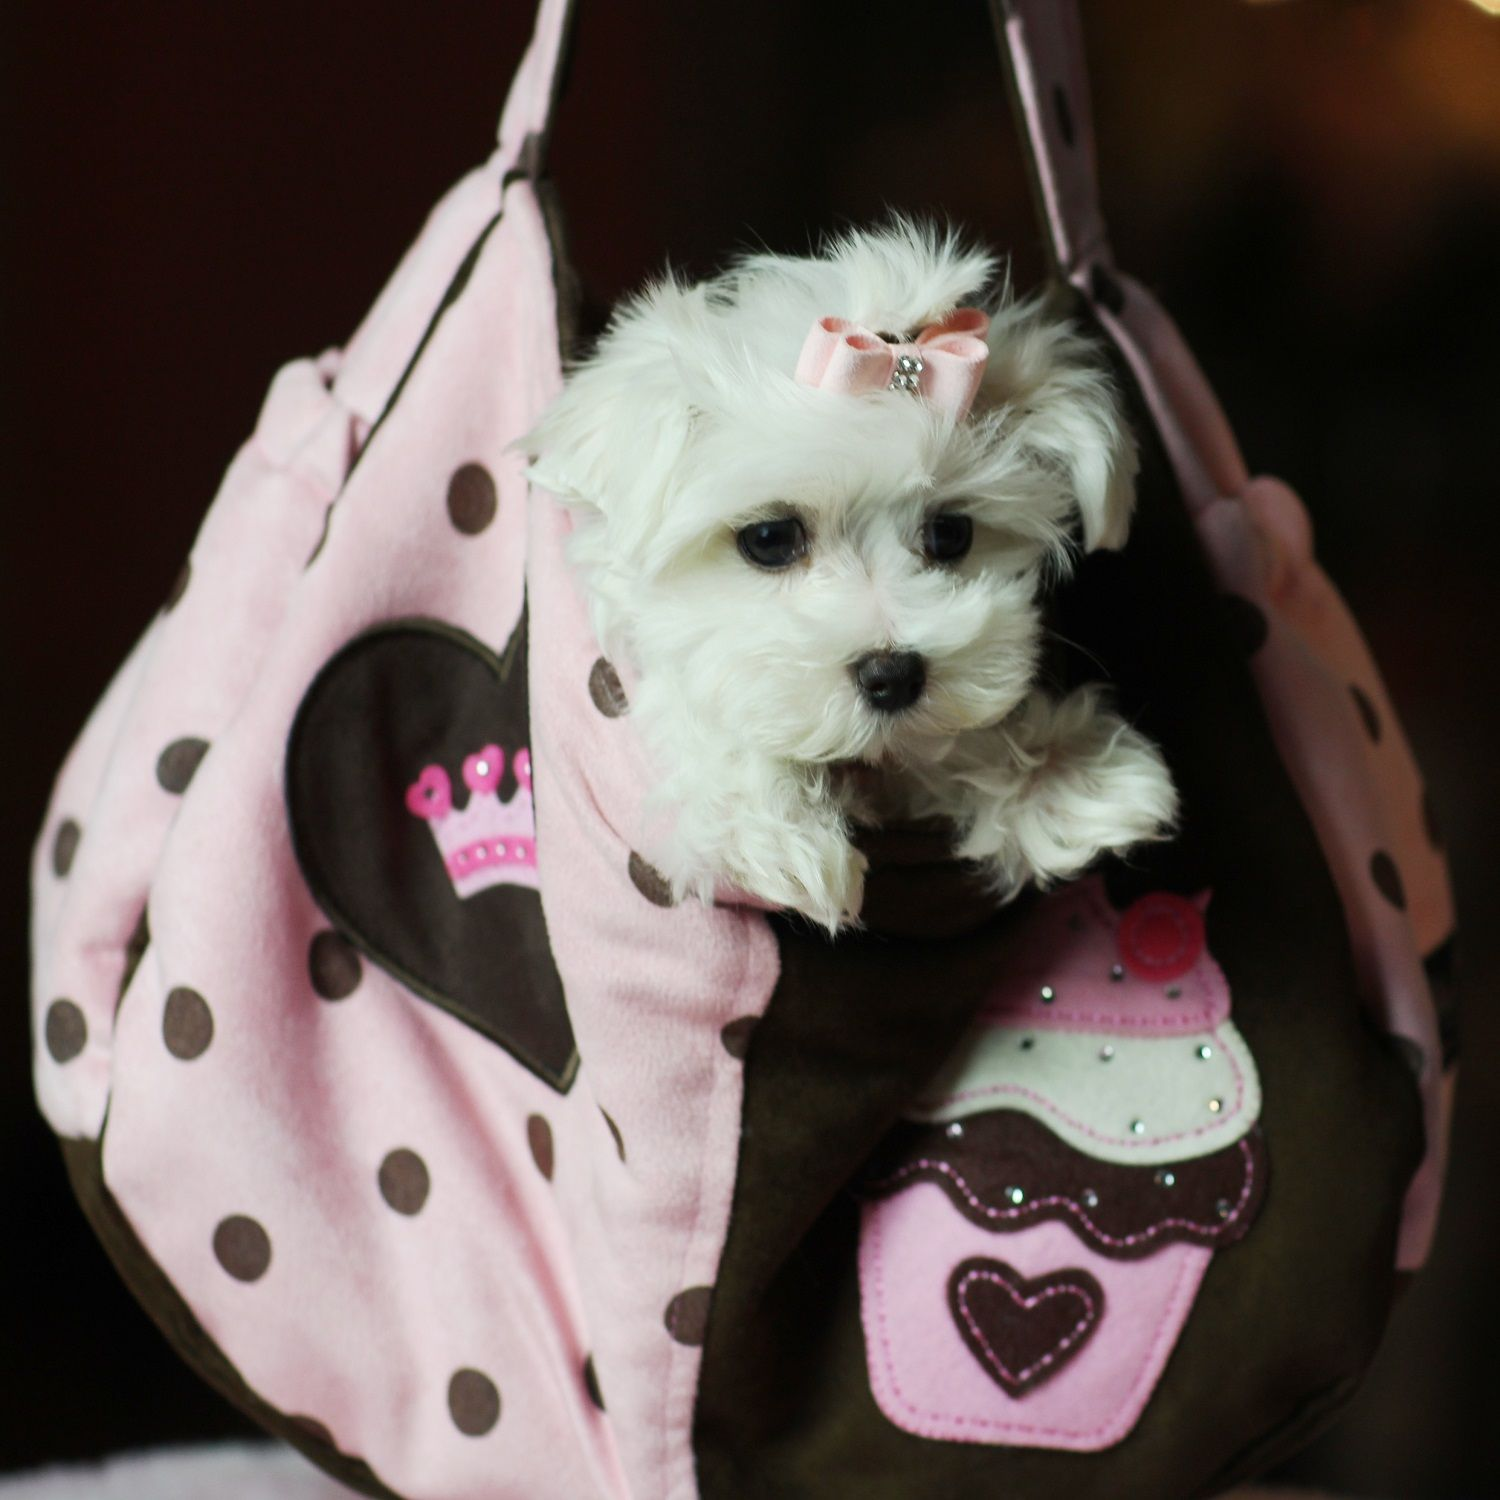 Teacup Puppies Store Luxury Puppy Boutique Supplies and